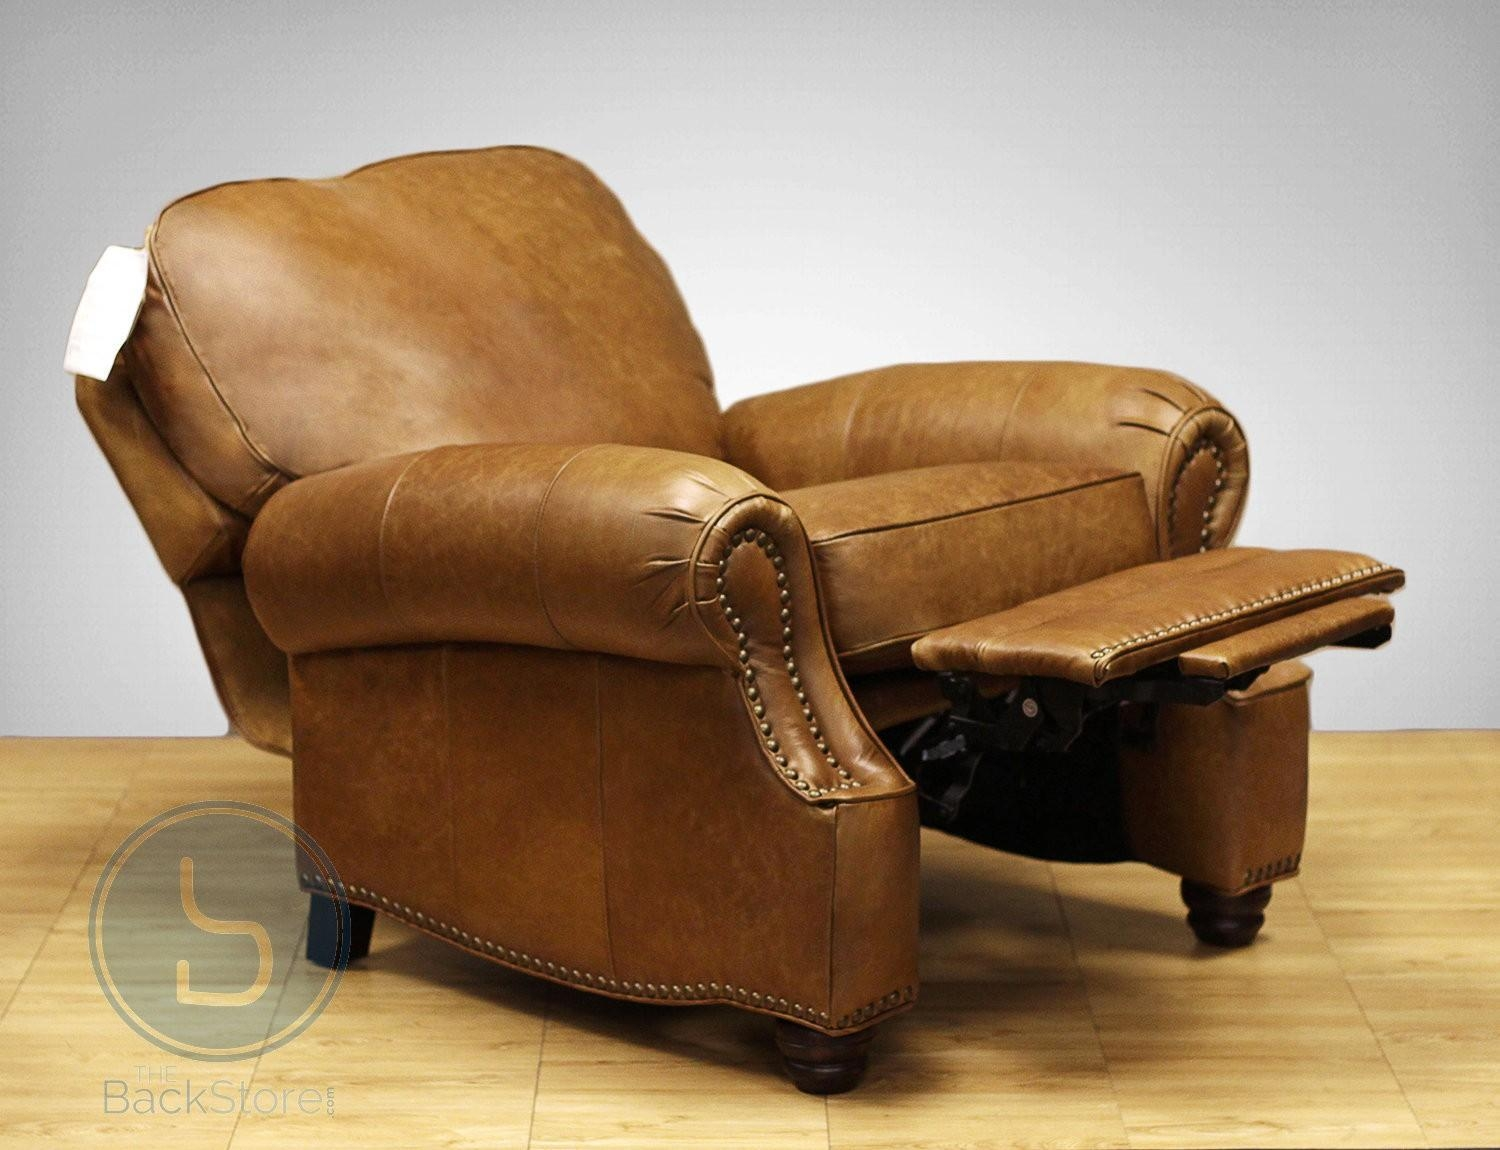 Barcalounger Longhorn Ii Leather Recliner Chair Regarding Barcalounger Sofas (Photo 9 of 20)